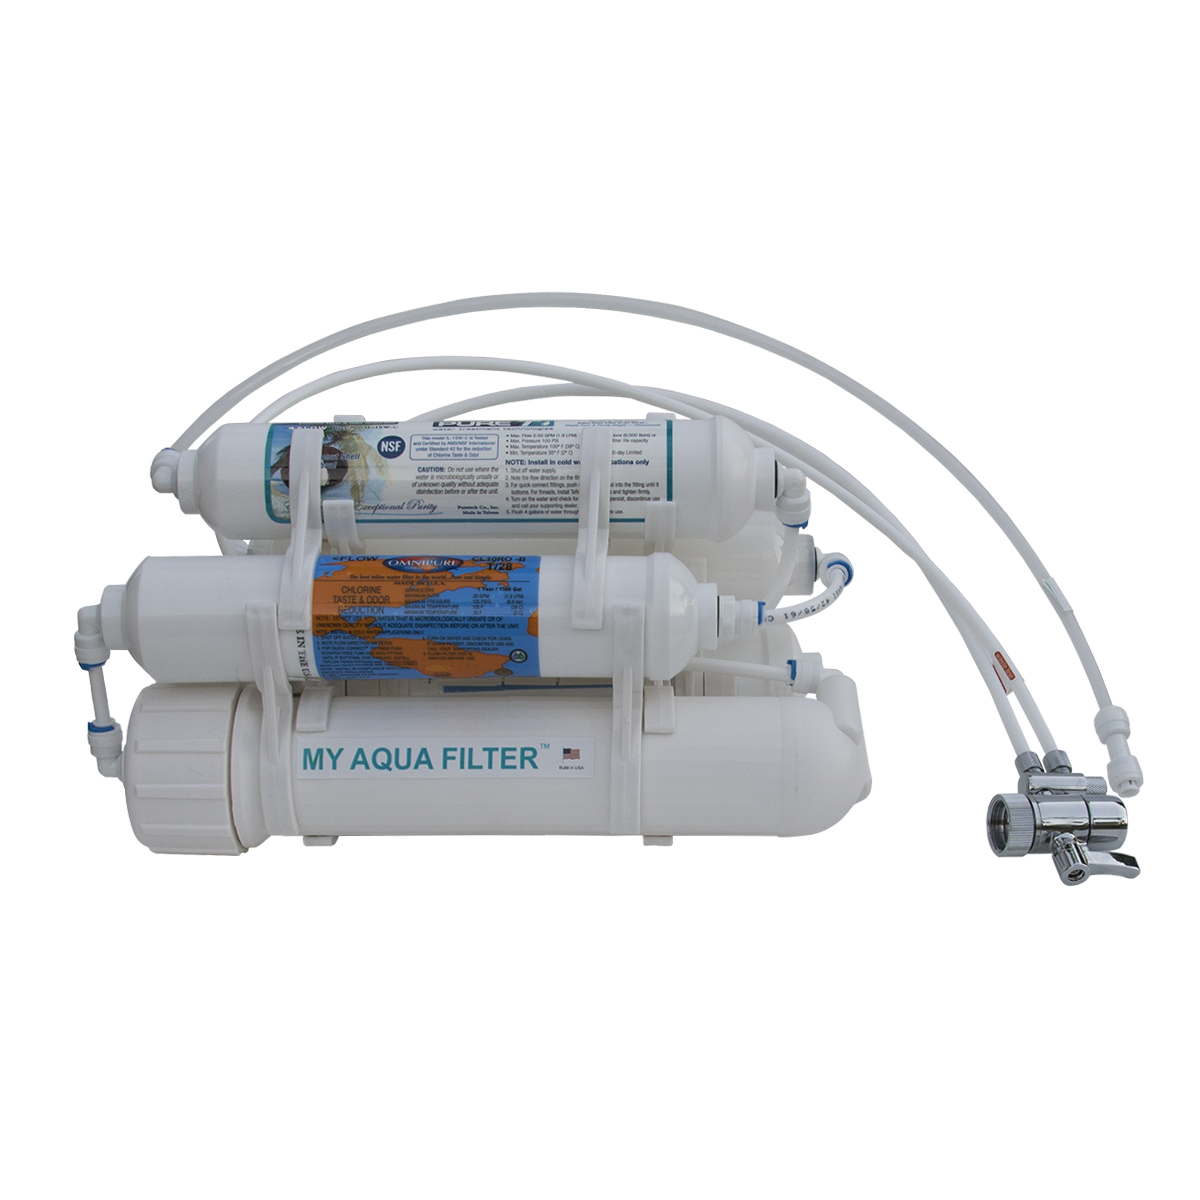 5 Stage Reverse Osmosis Countertop Water Purification System For Ultrapure Filtration With Close To 0ppm Di Post Filter 75 100 150 Gpd Membrane My Aqua Filter